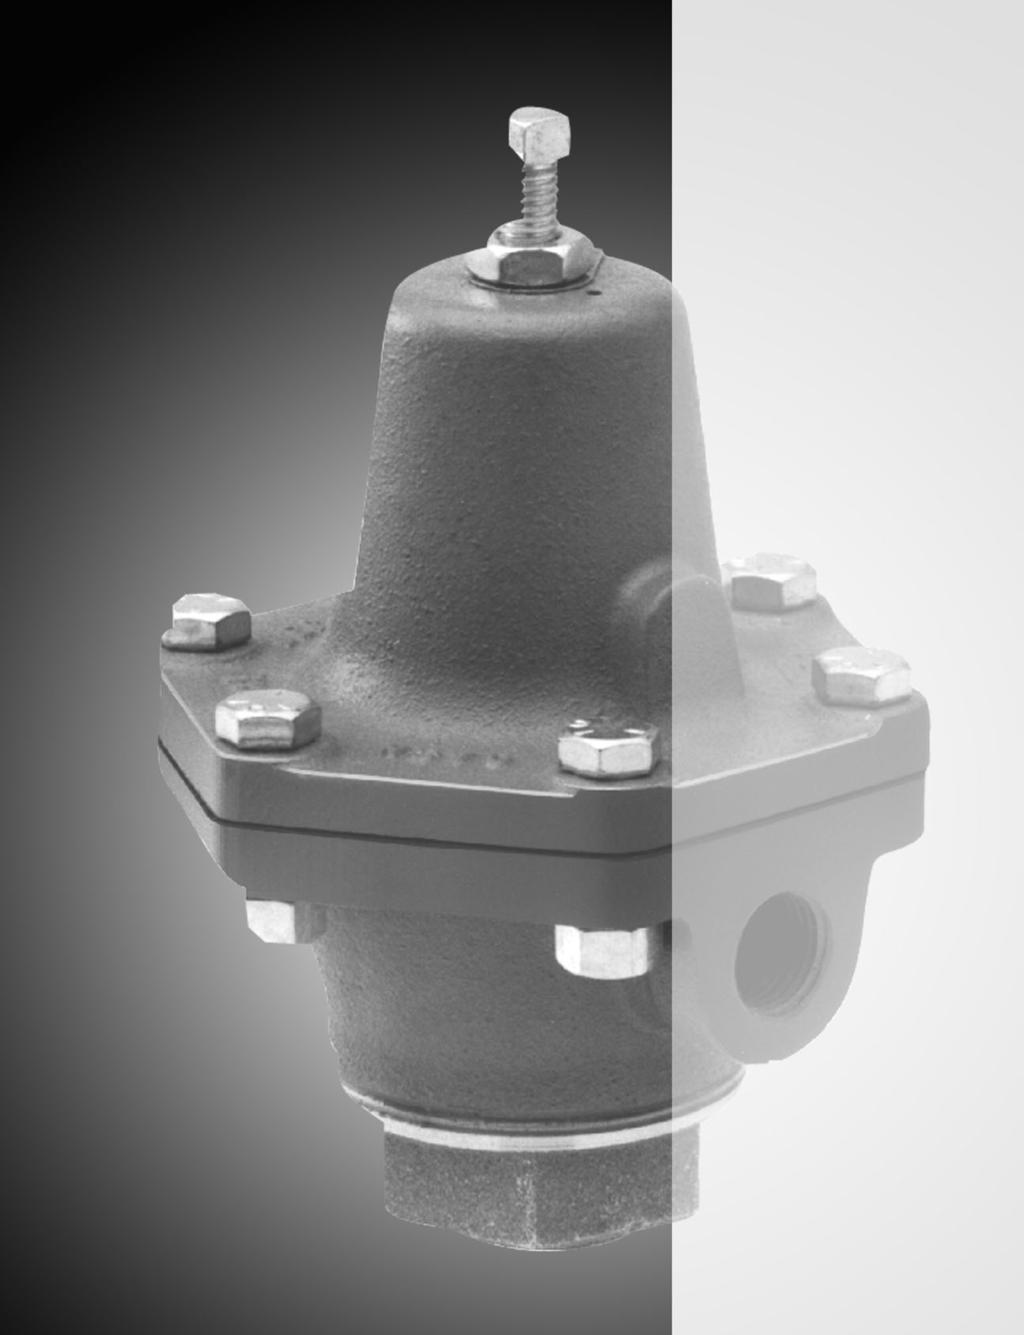 Cash Valve B SERIES REGULATORS ISSUED -